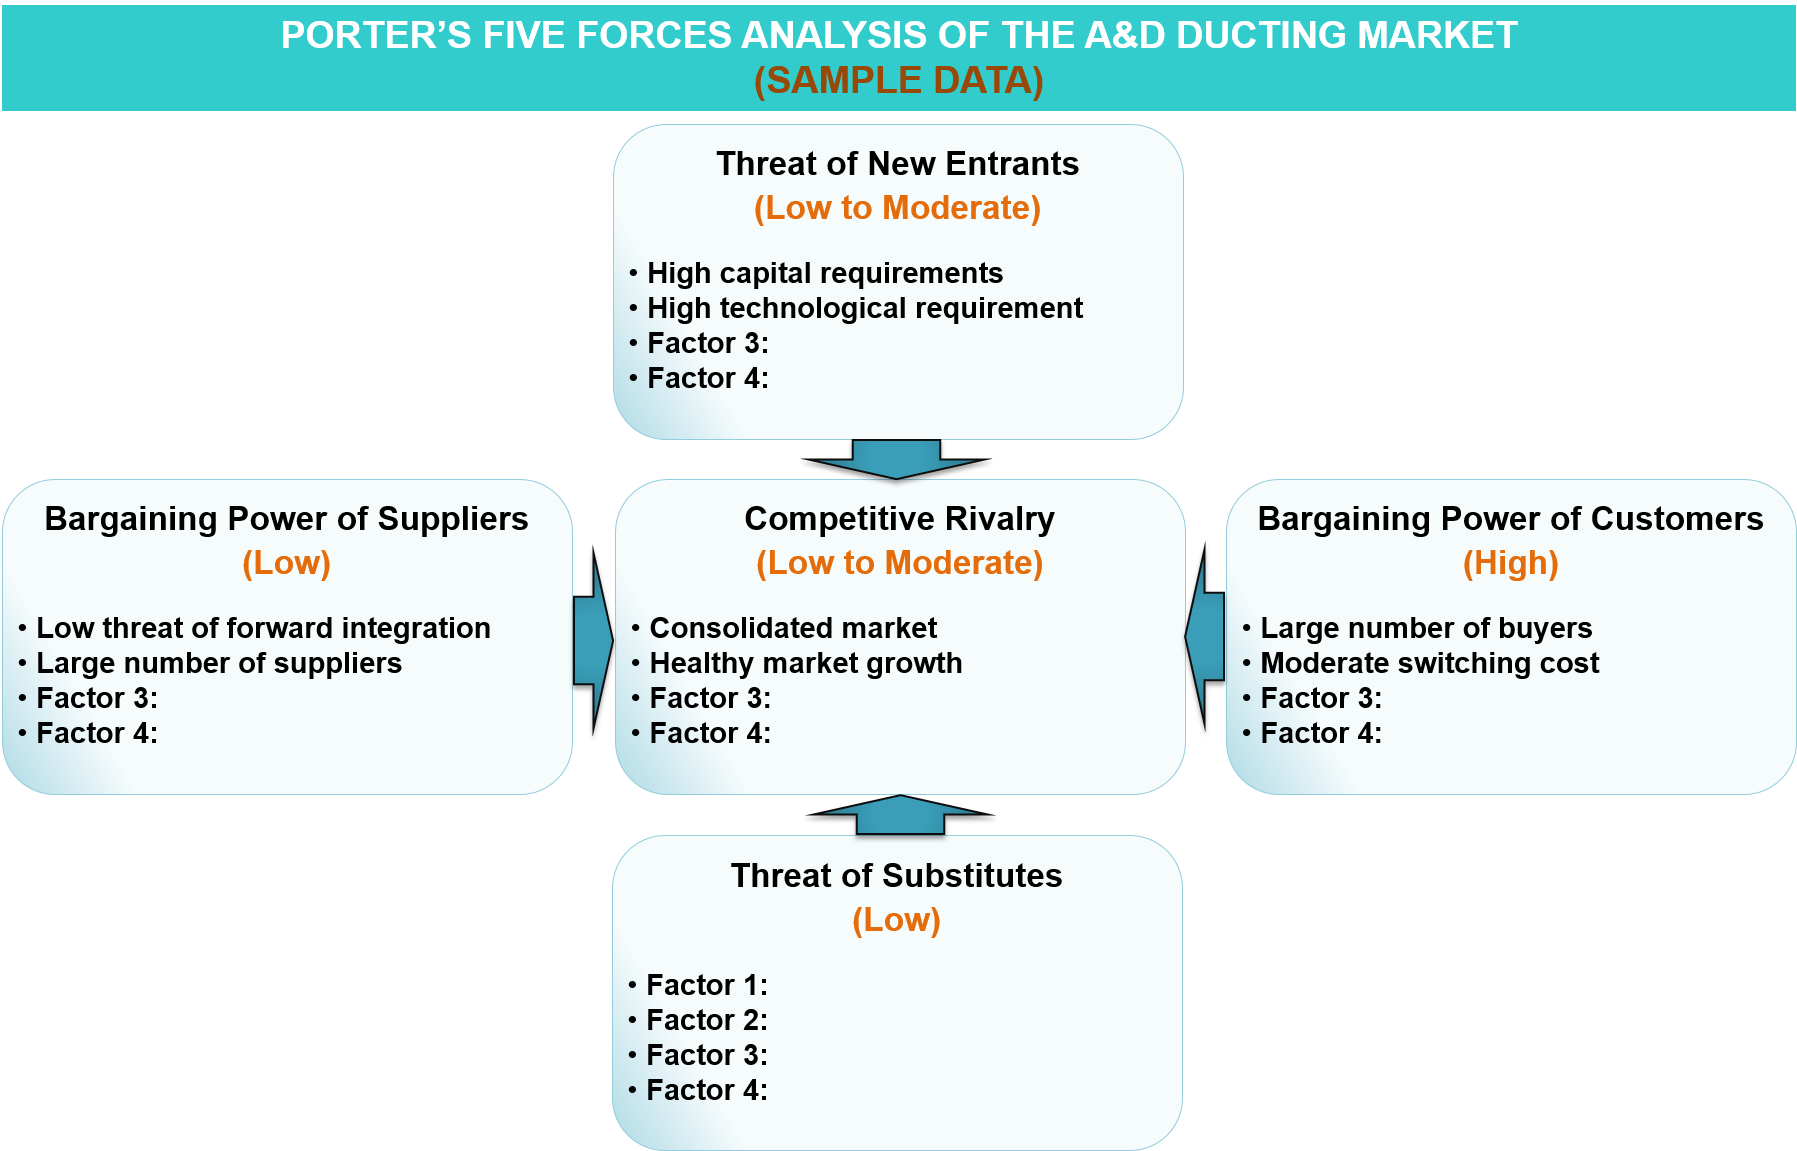 Porter's Five Forces Analysis of the A&D Ducting Market